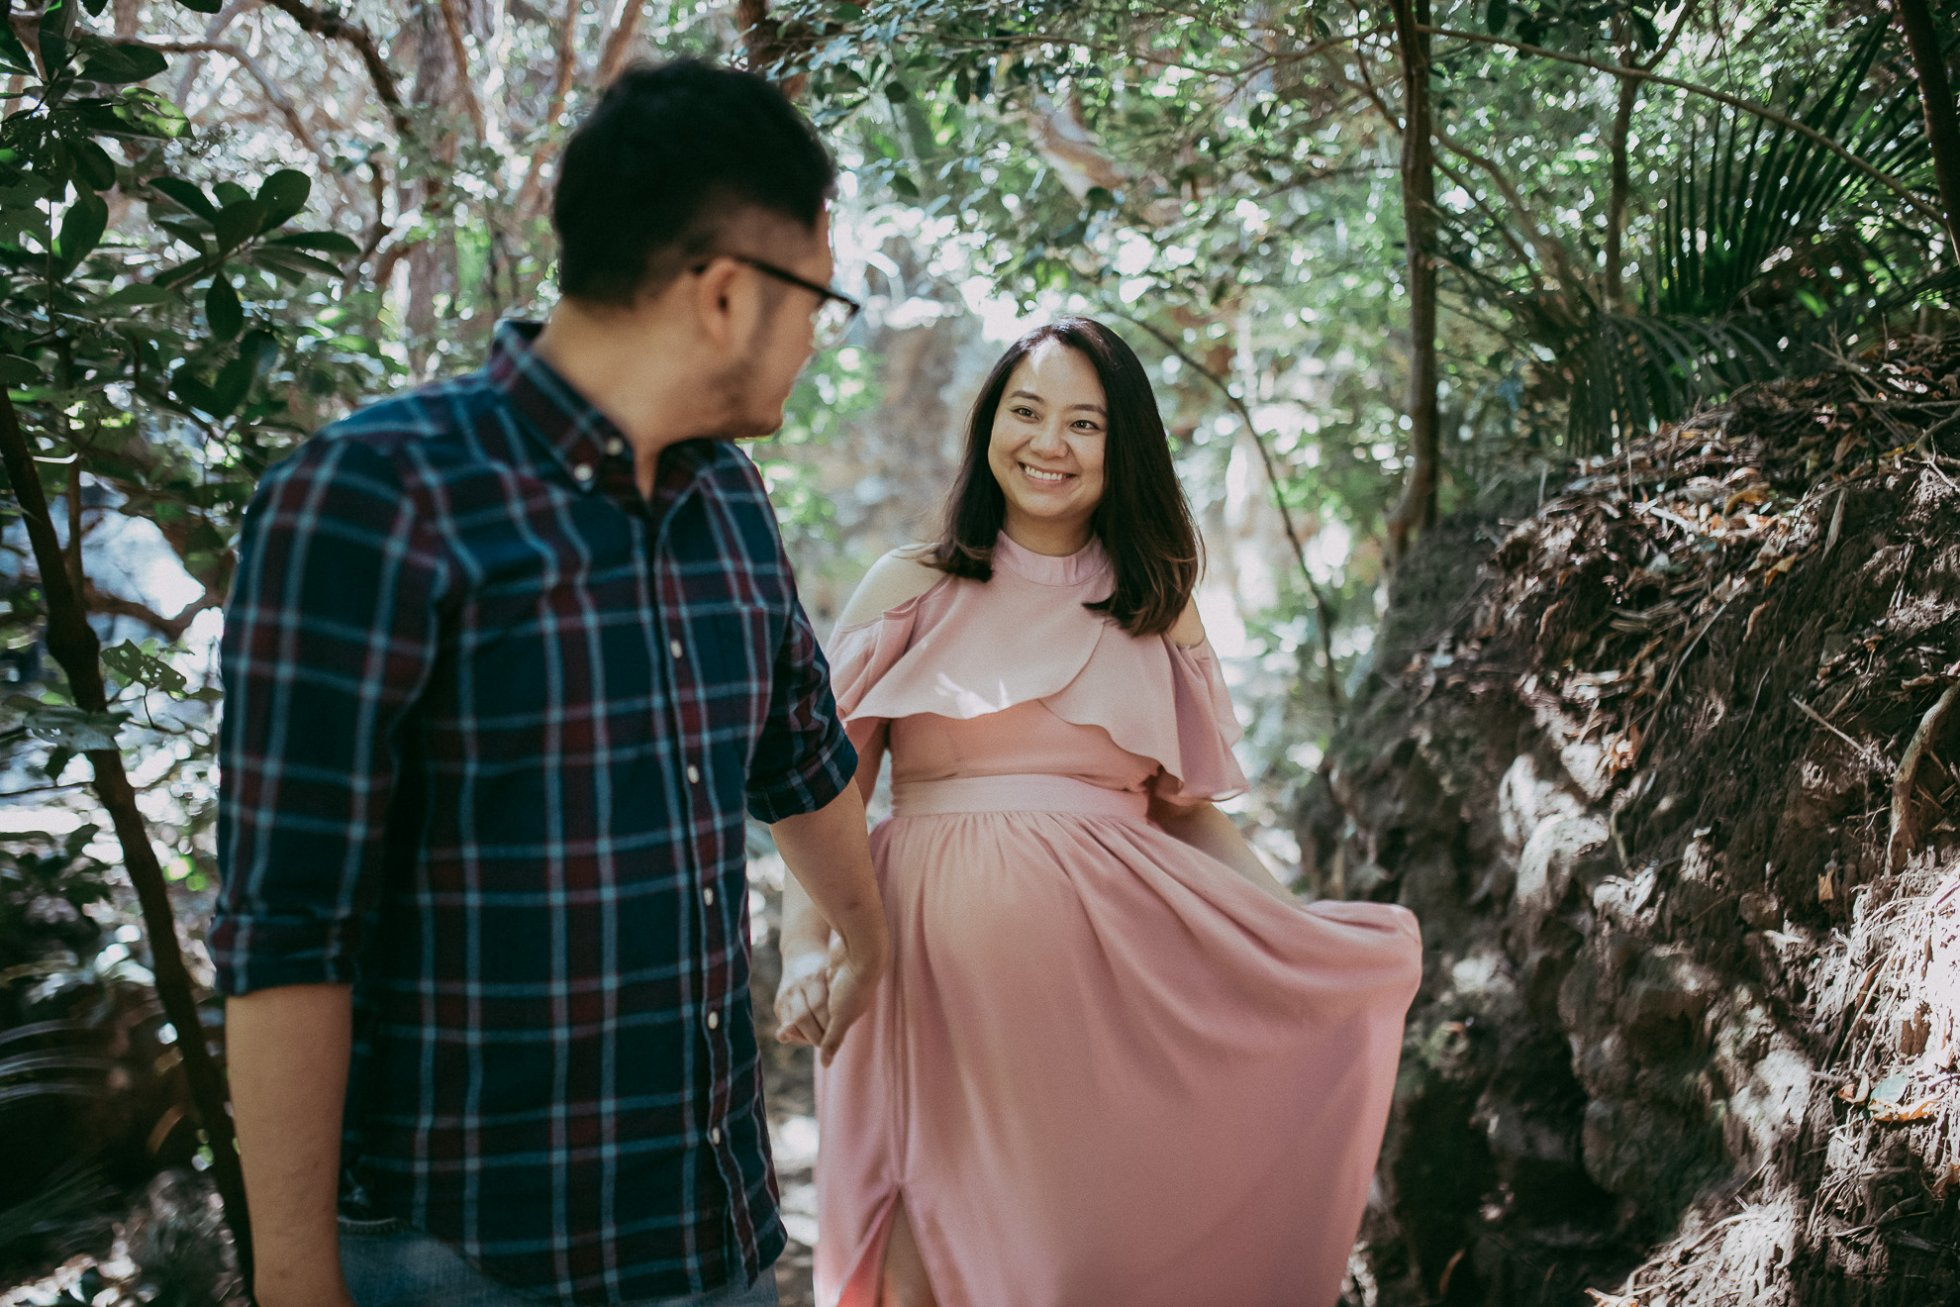 Maternity image of couple smiling by Olga Levien